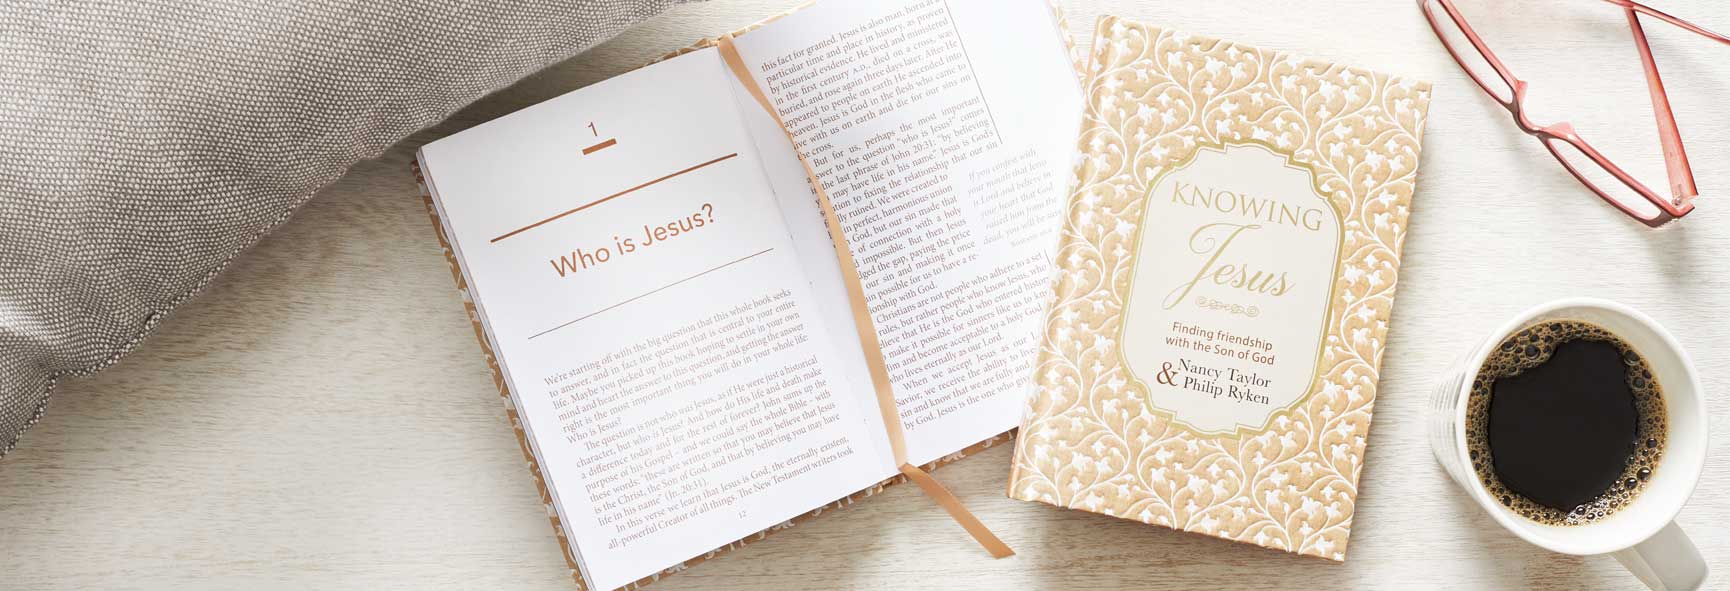 Question & Answer Book: Knowing Jesus